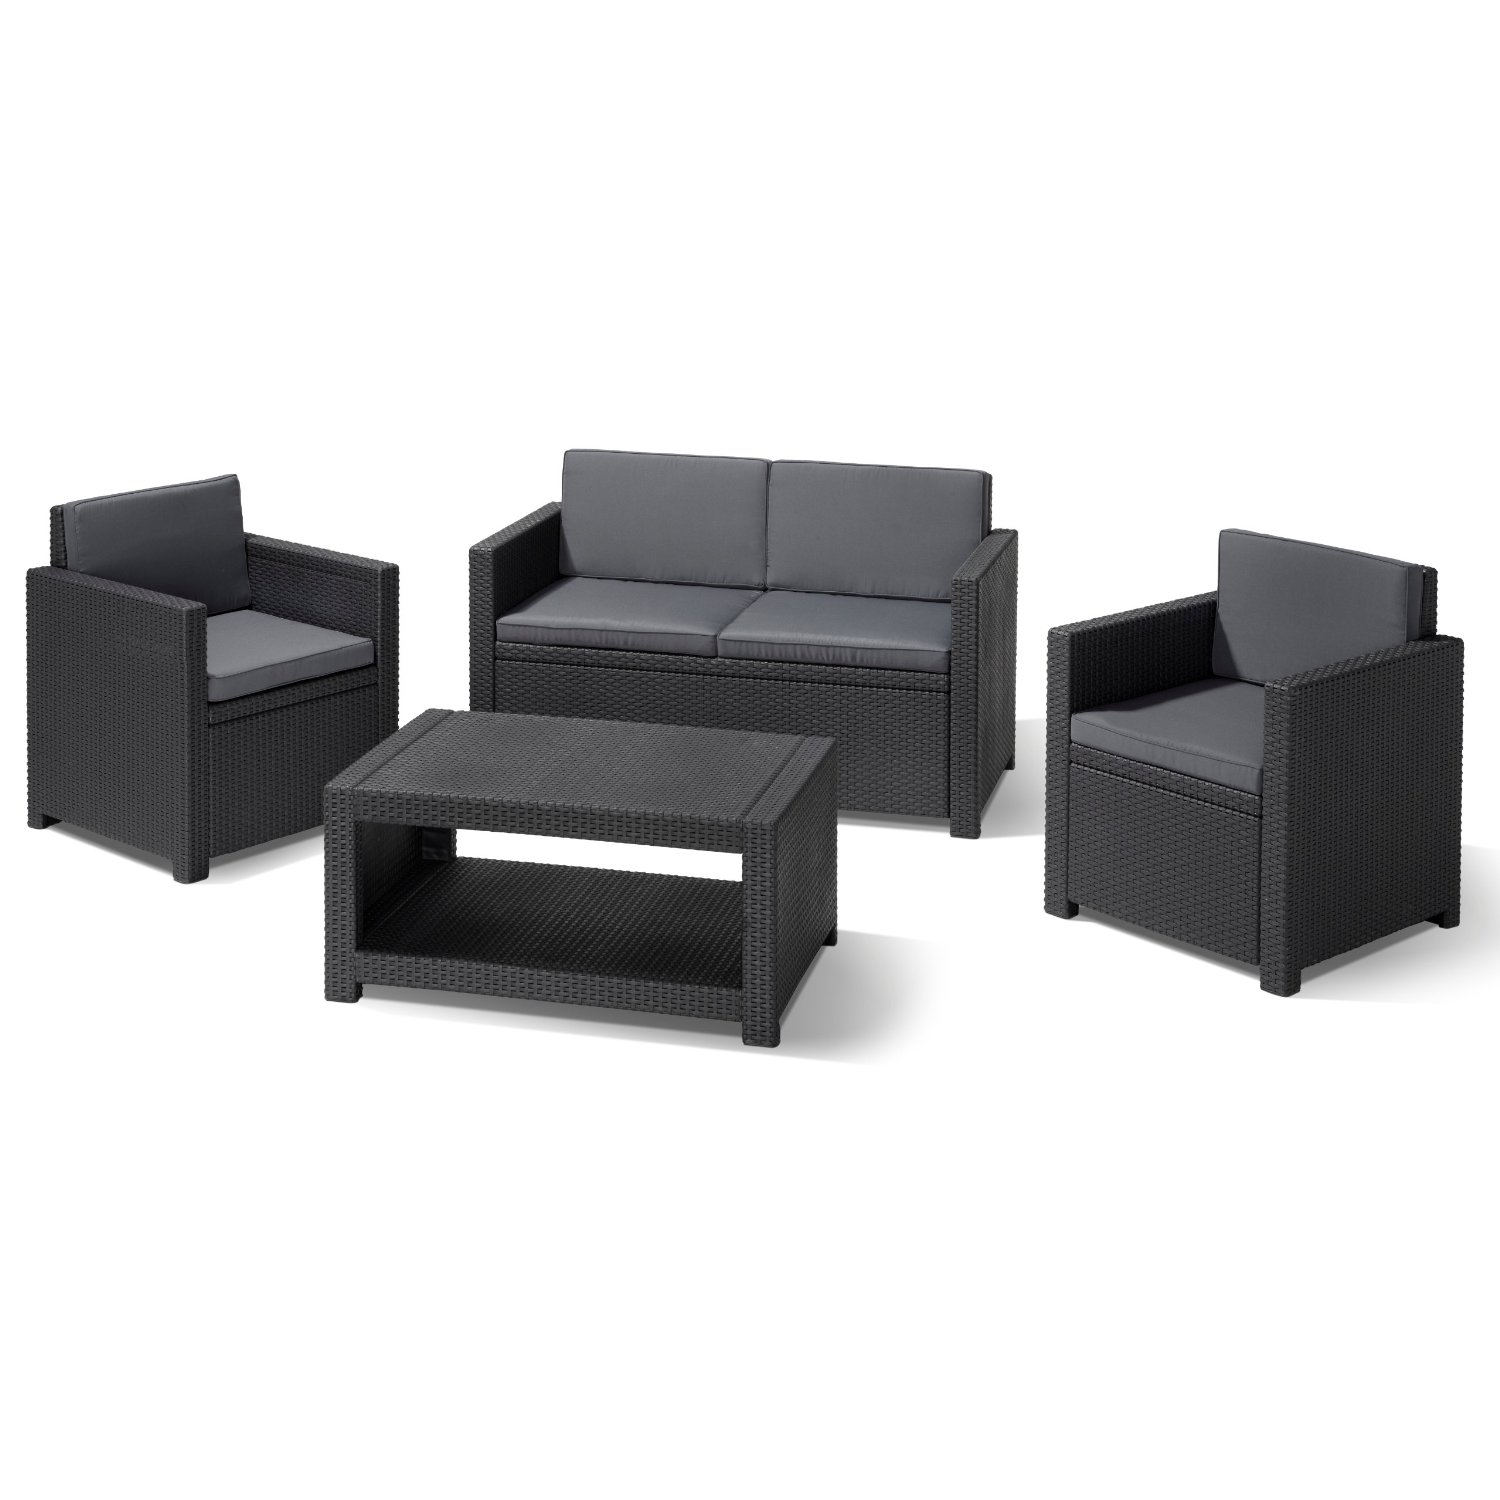 lounge gartenm bel allibert 183313 lounge set monaco set rattanoptik kunststoff anthrazit. Black Bedroom Furniture Sets. Home Design Ideas